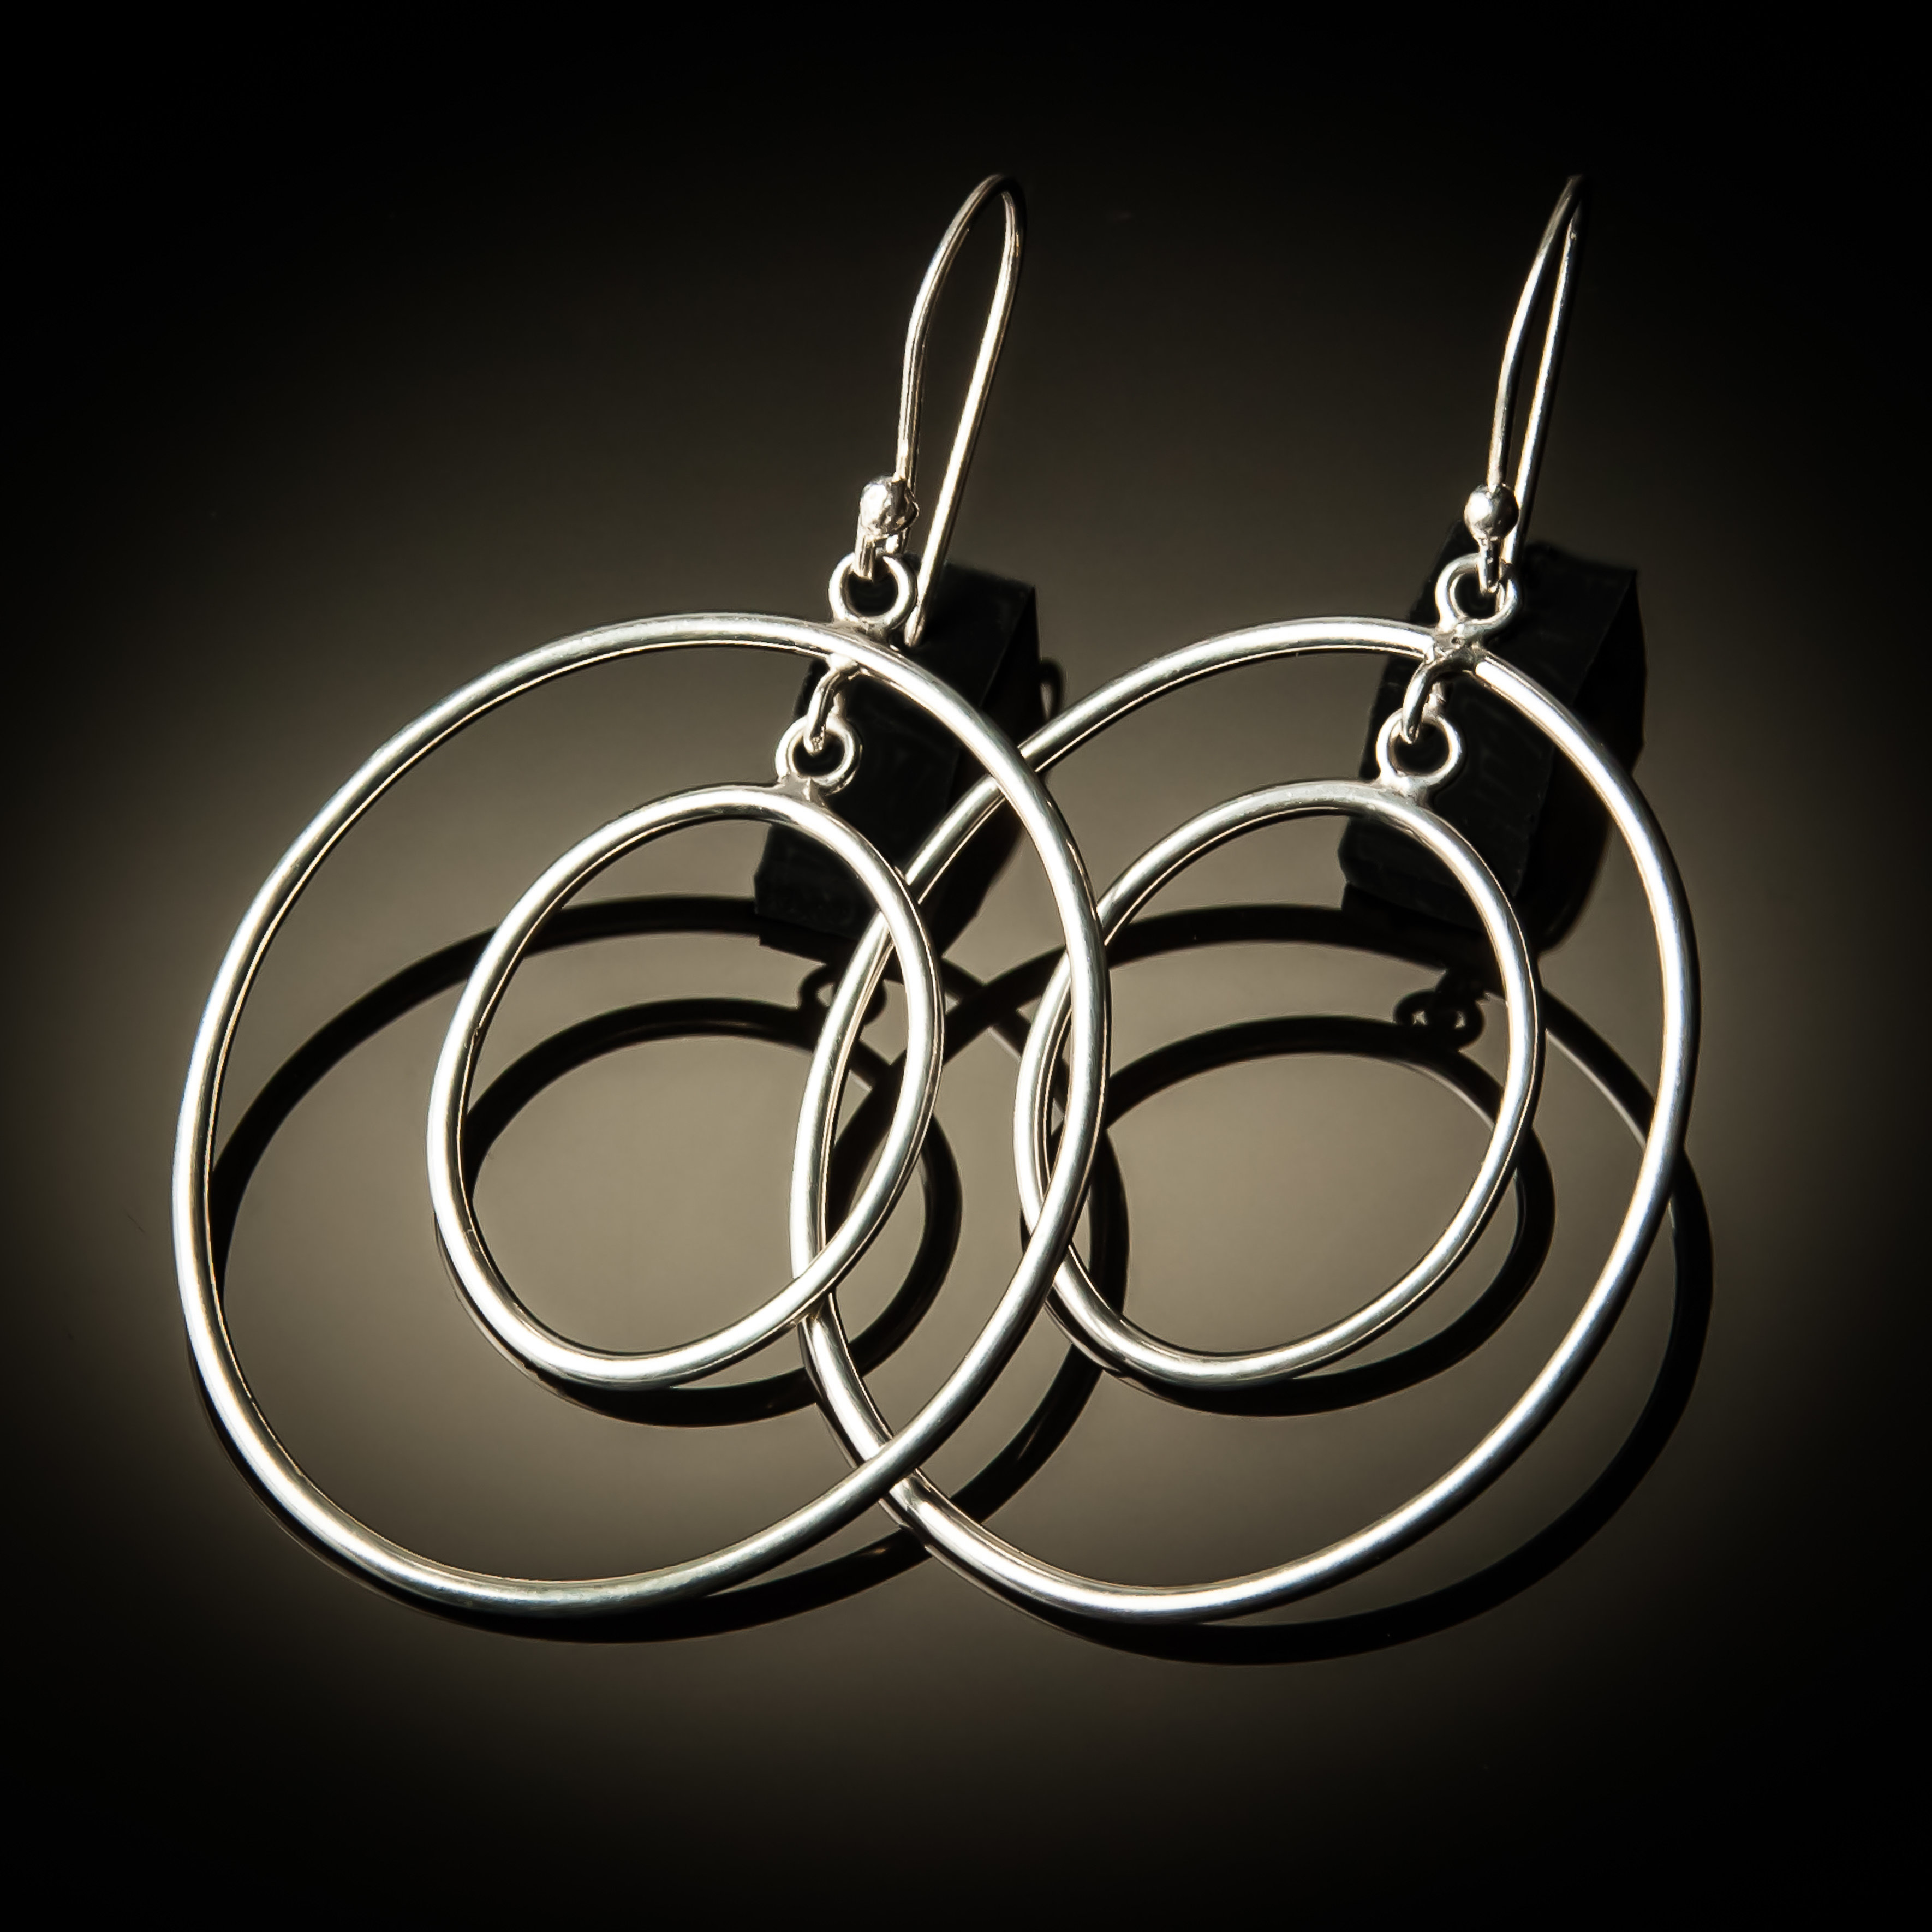 Double Hoop Oval Sterling Silver Earrings ER-0811